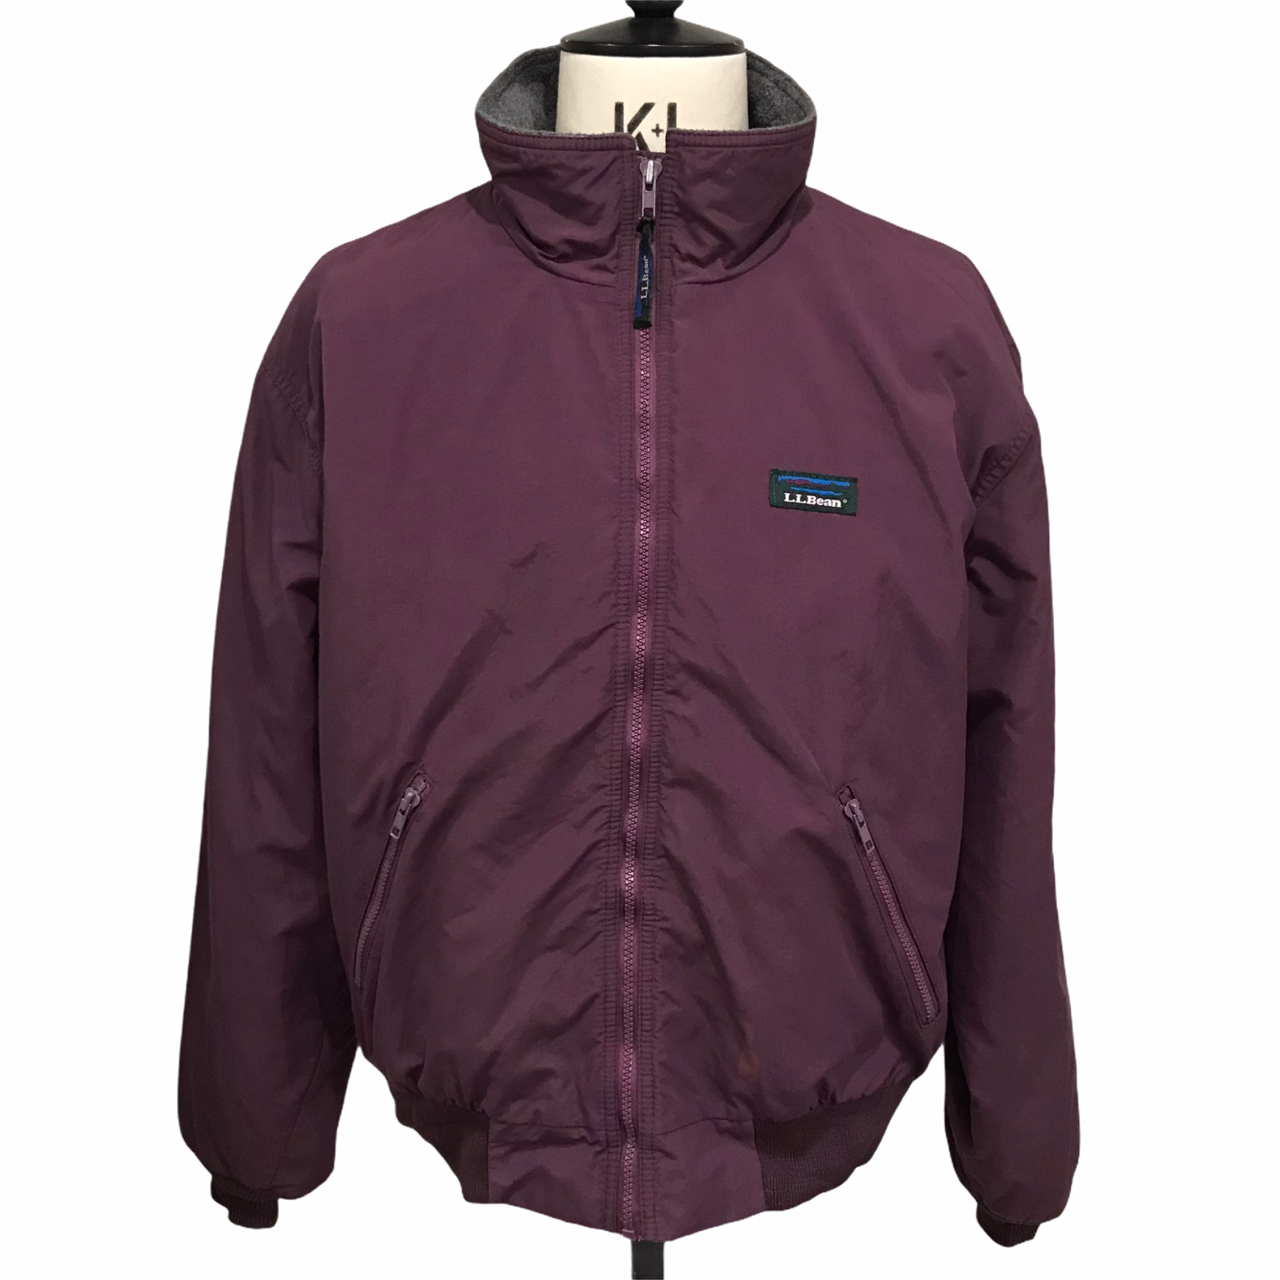 13 90's L.L.Bean Warm-up jacket made in USA Burgundy